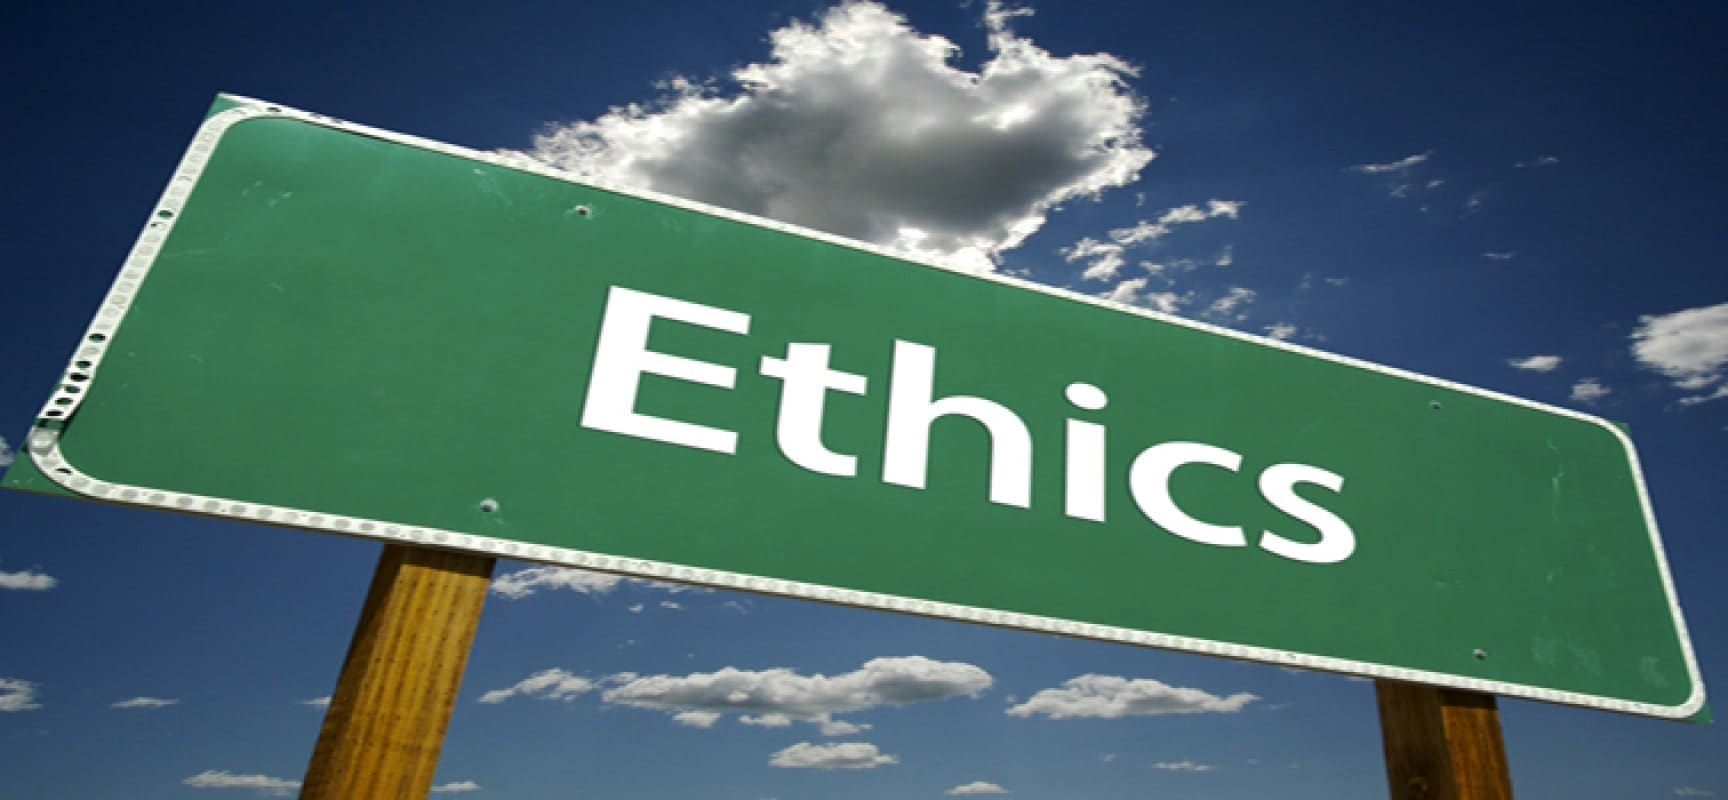 EXCELLENCE WITH ETHICS